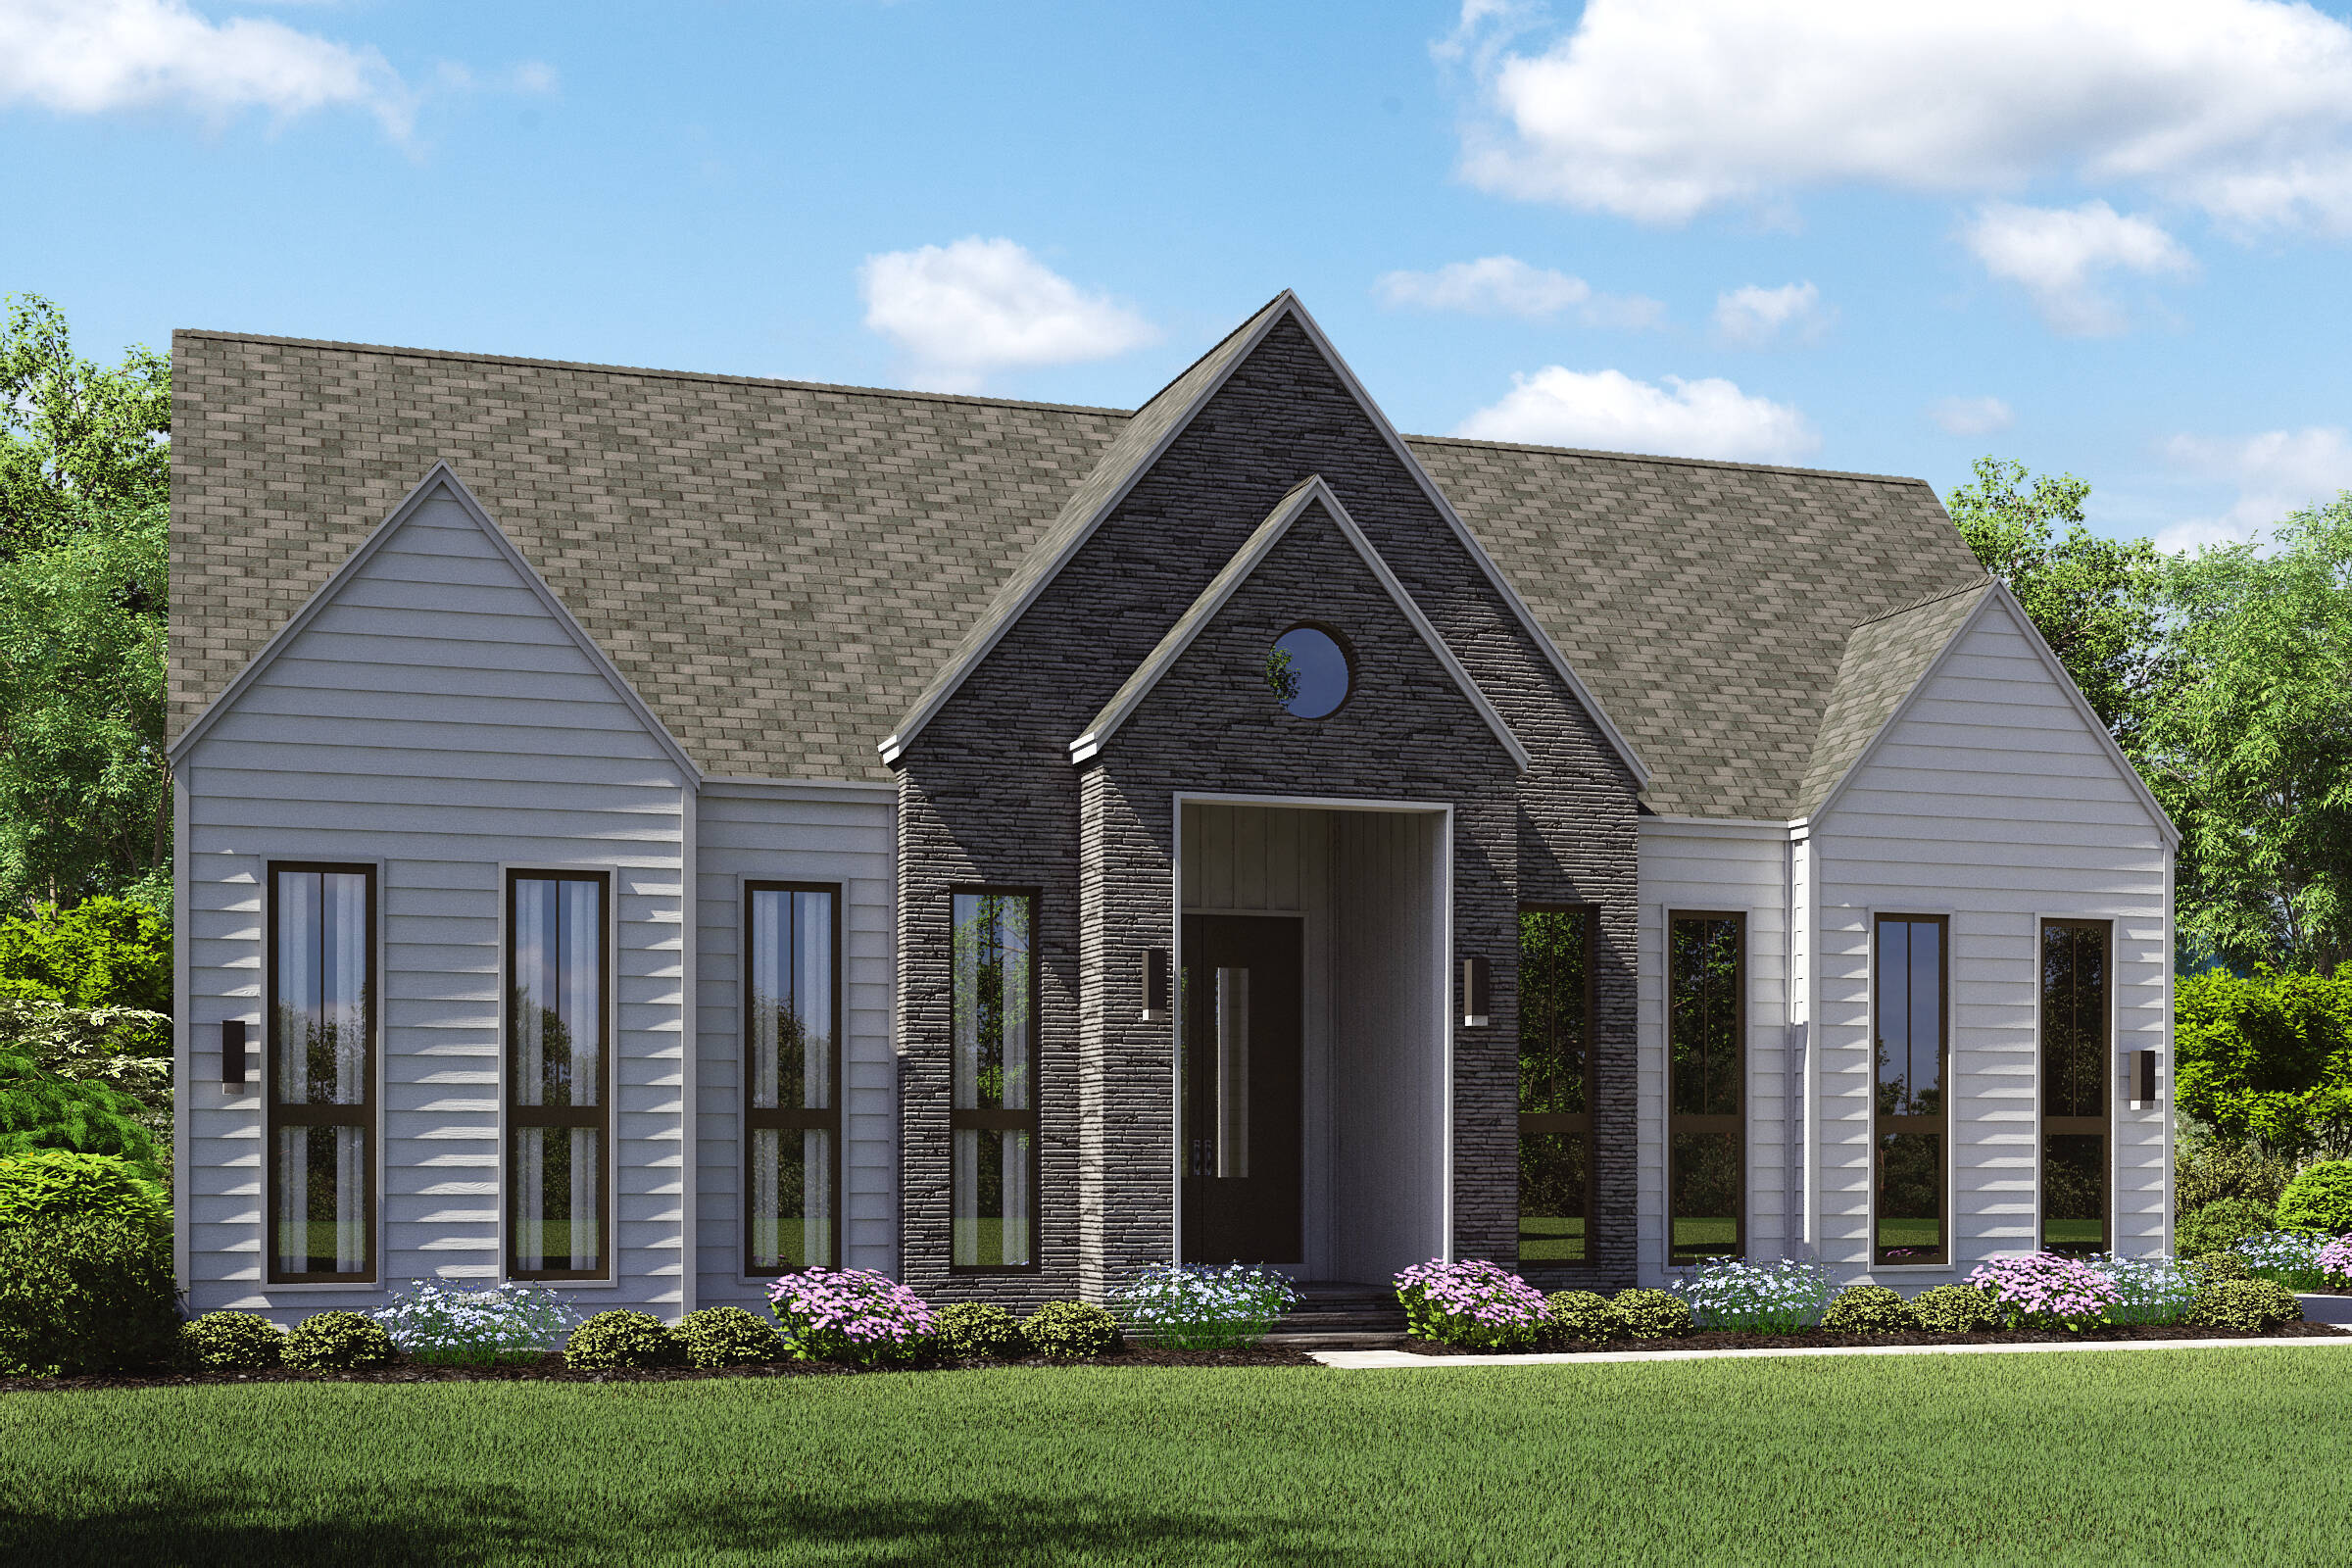 de windhond ht new home at windmill series in virginia